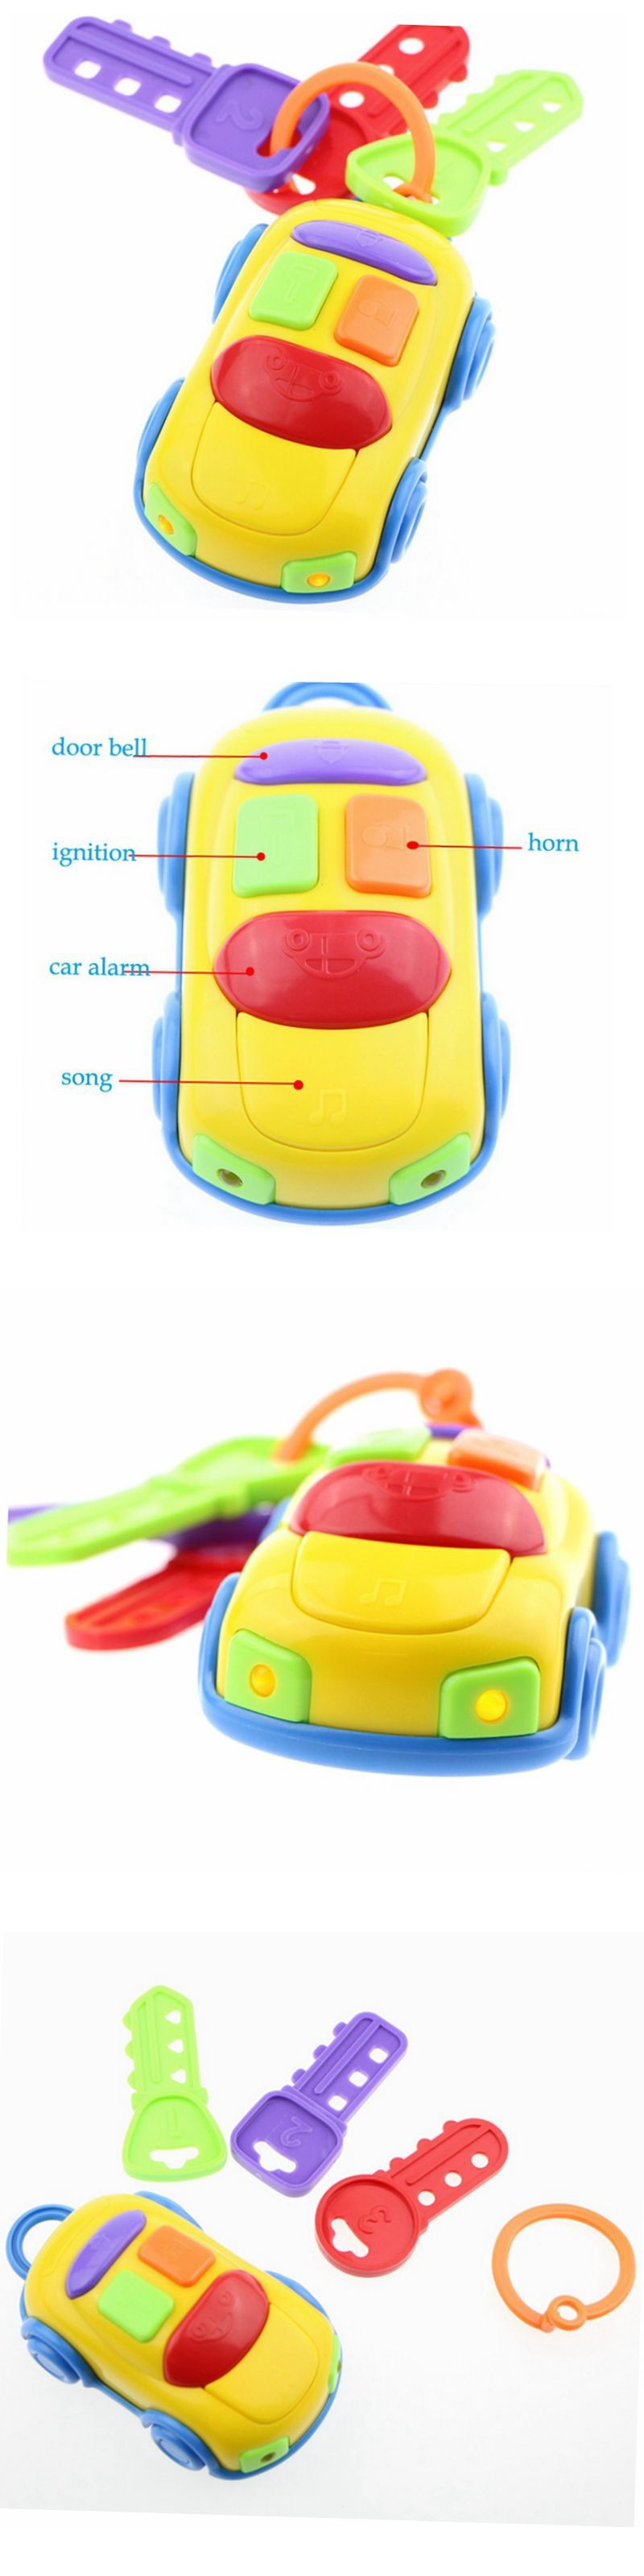 Baby toys car  Kid Toy Car Keys Remote With Lights And Sounds Children Toys Baby